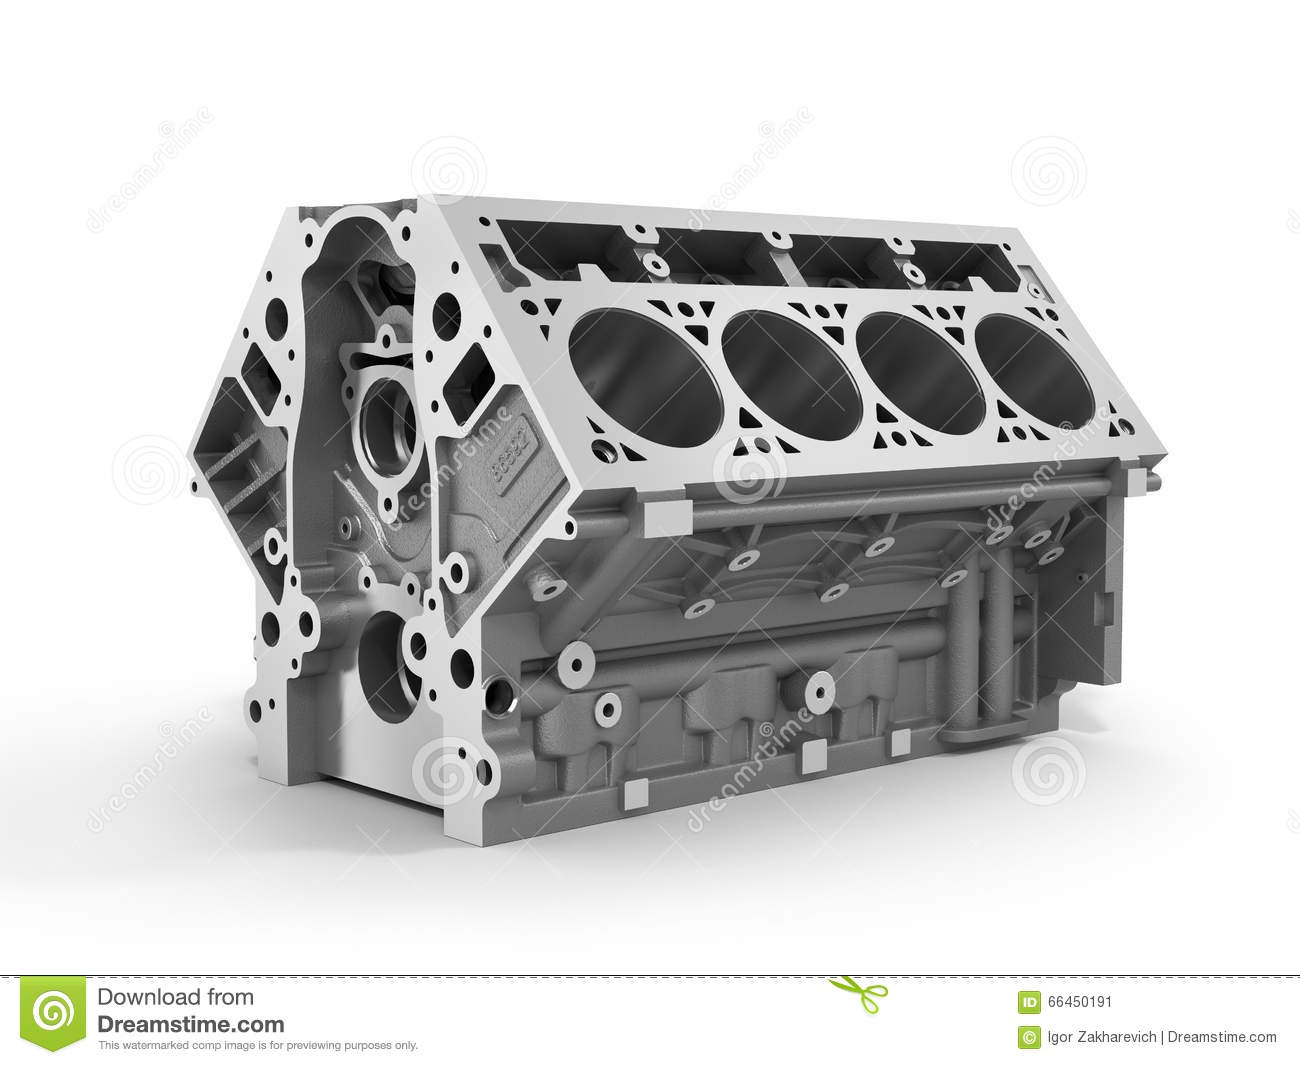 3d Render Of Cylinder Block From Strong Car With V8 Stock Engine